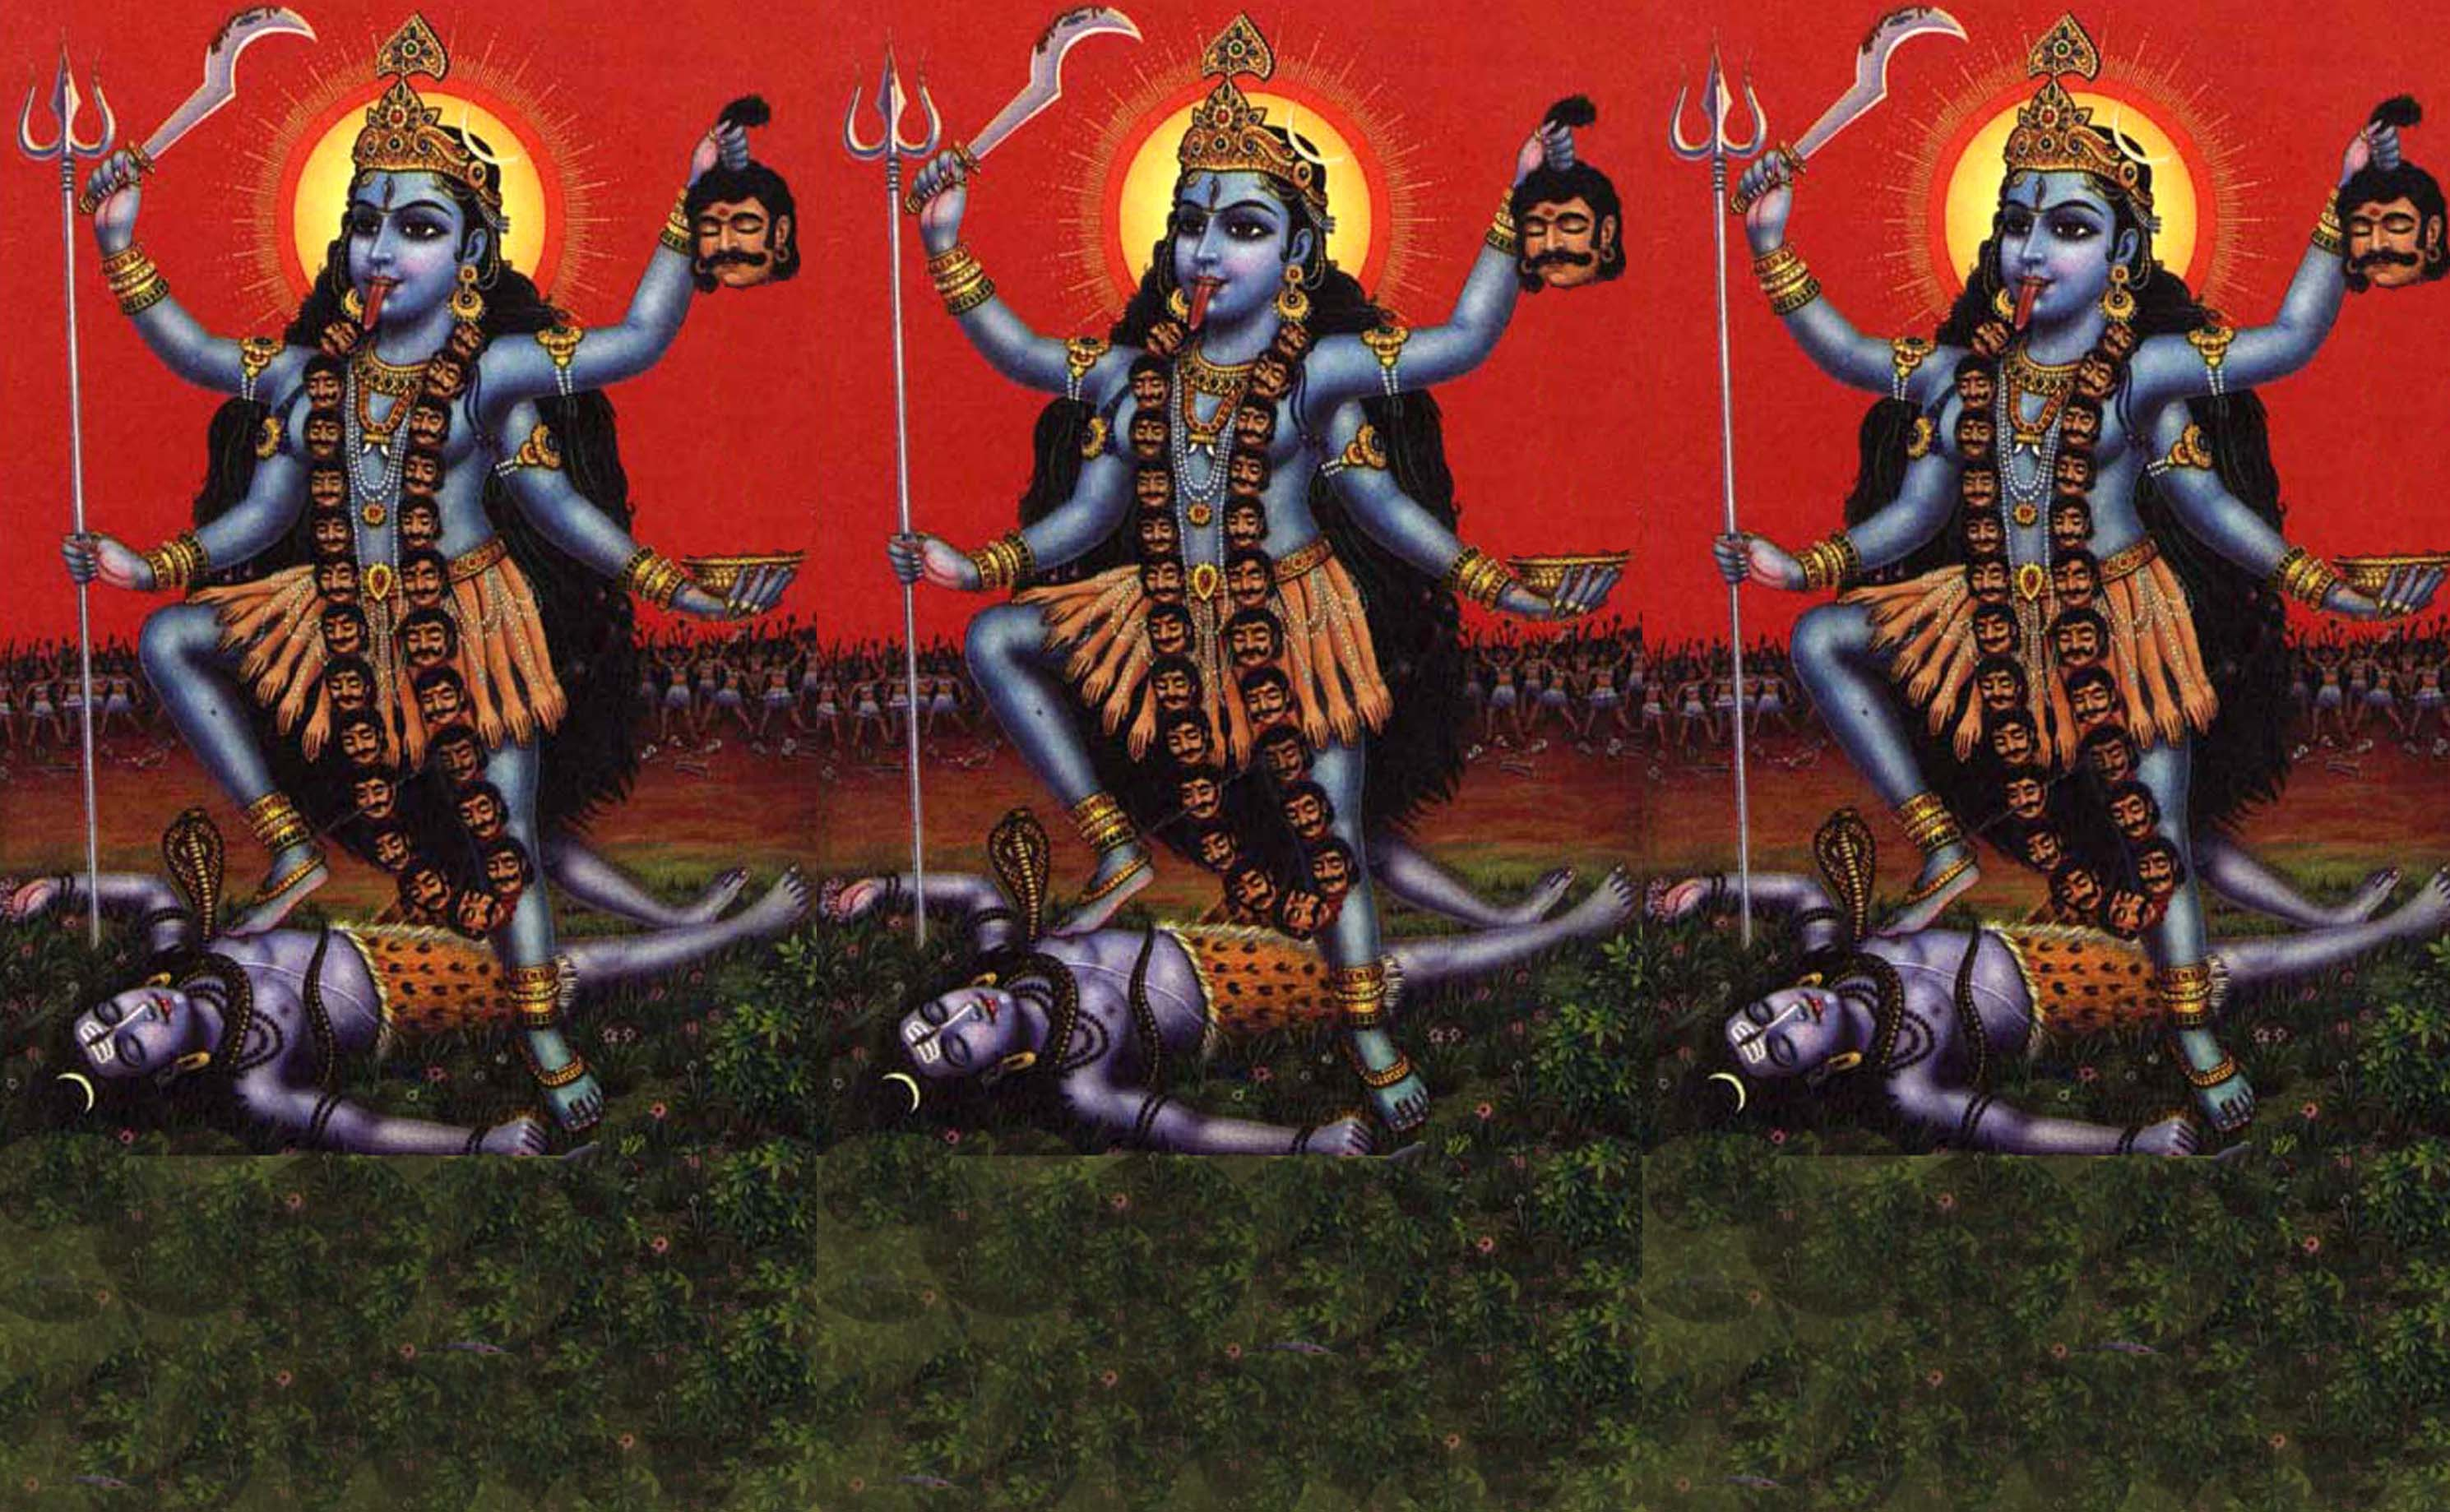 Kali is depicted here with blue skin and a garland of severed heads. She holds a khopesh (saber) and a severed head. Her tongue is obscenely long to catch the blood that drains from the heads. She stands on the body of a sleeping shiva.